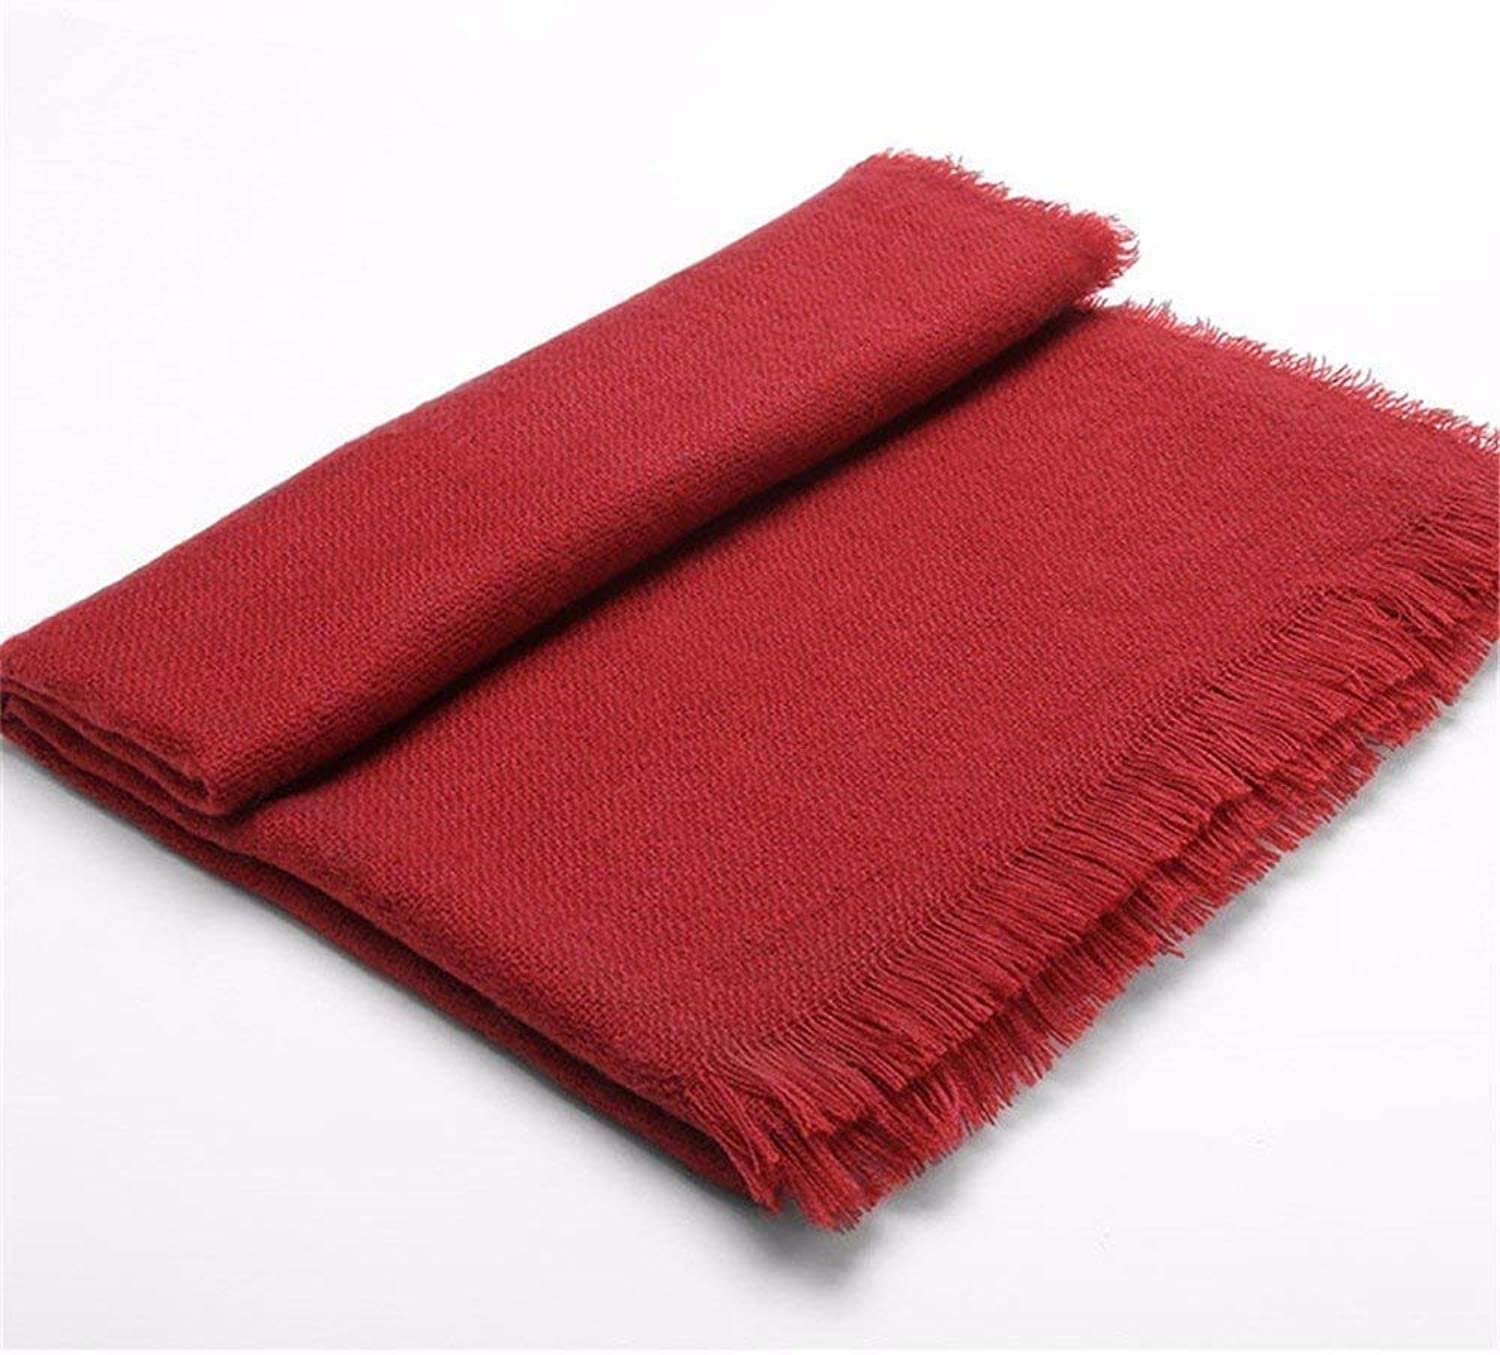 Dequanrong ScarfMadam Autumn And Winter Are Very Warm. Shawl And Scarf Are Both Comfortable Skin Fashion Scarf for Women